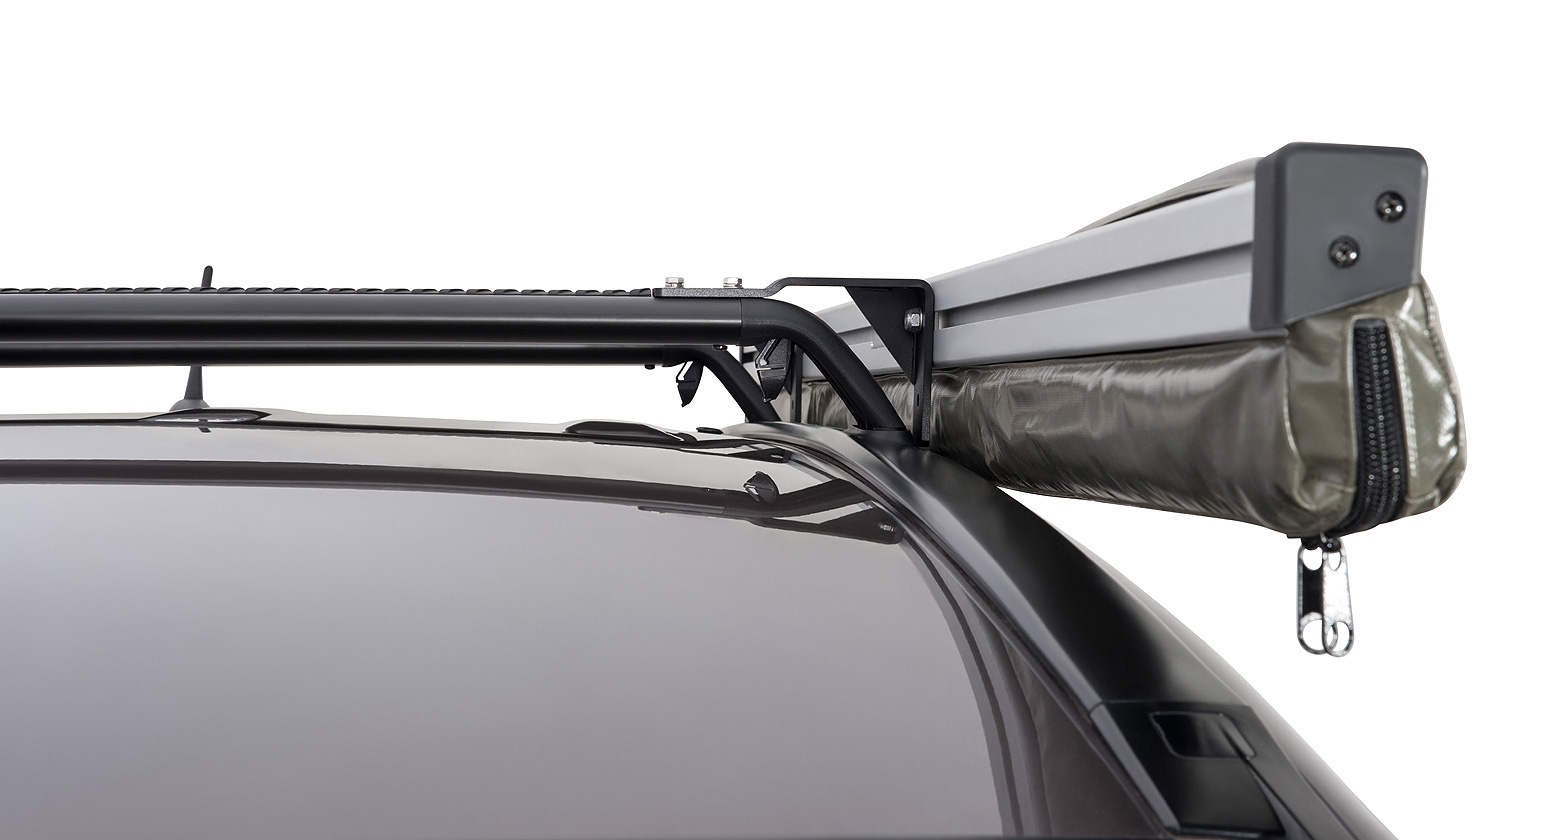 Roof Rack City Rhino Rack Sunseeker Awning Angled Down